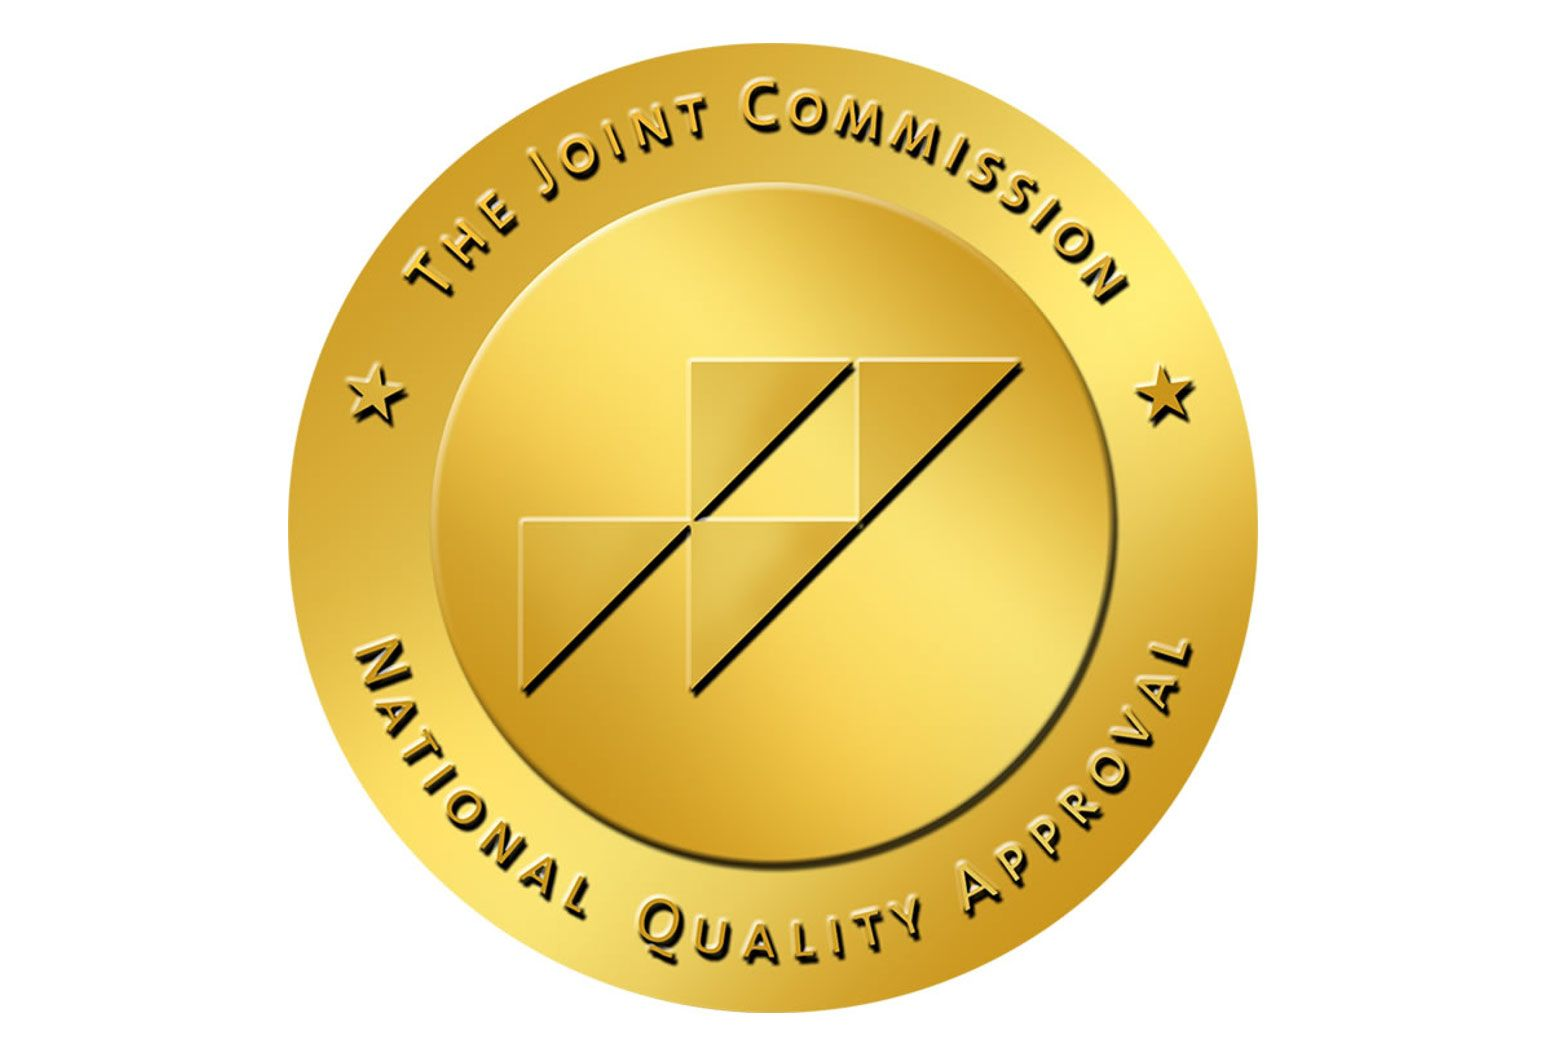 An image of the Joint Commission's National Quality Approval gold seal.